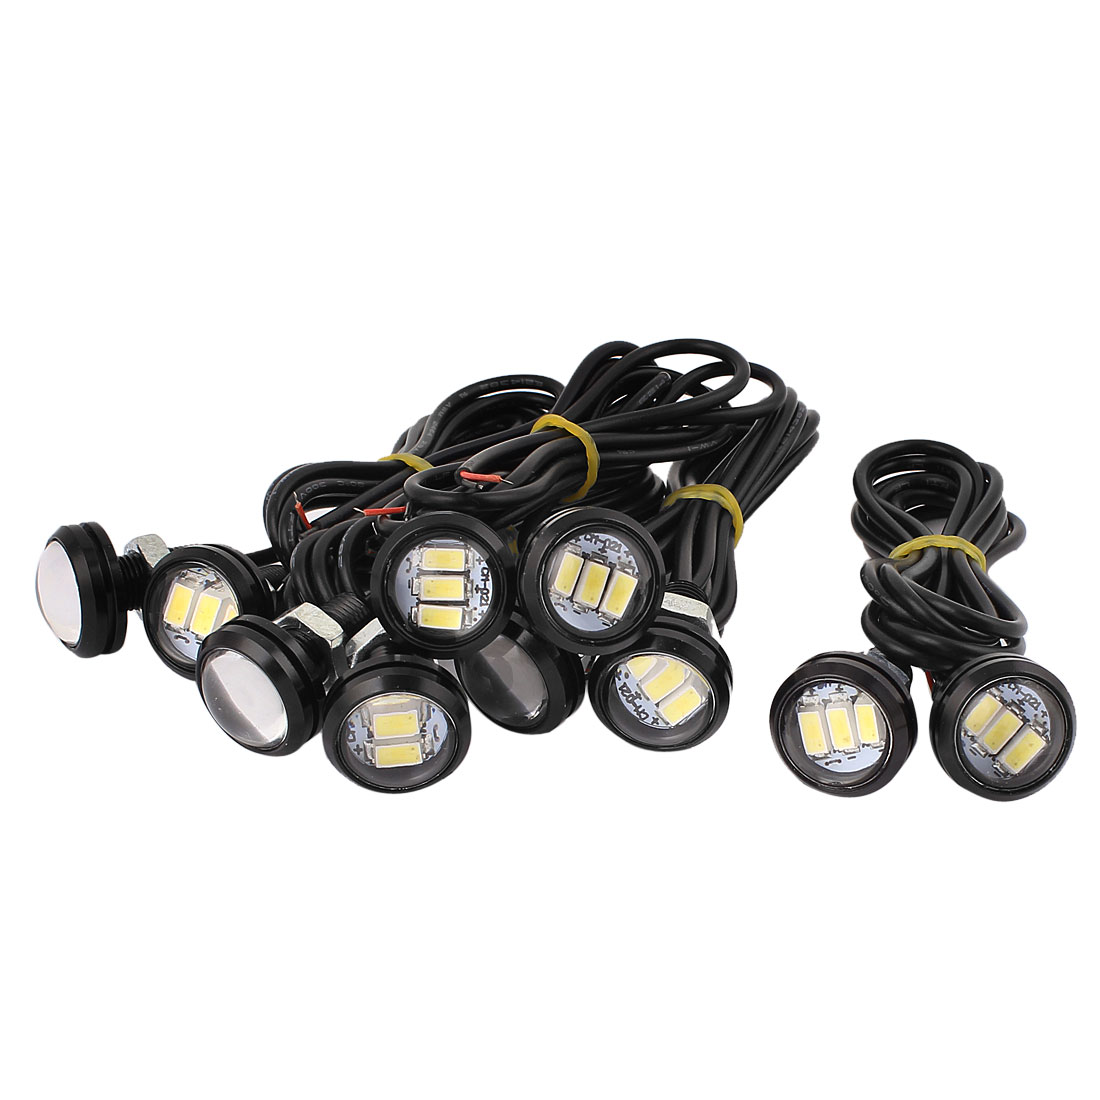 10 Pcs Eagle Eye 5630-SMD 3-LED White Light LED Daytime Running Tail Signal Light for Car Motor